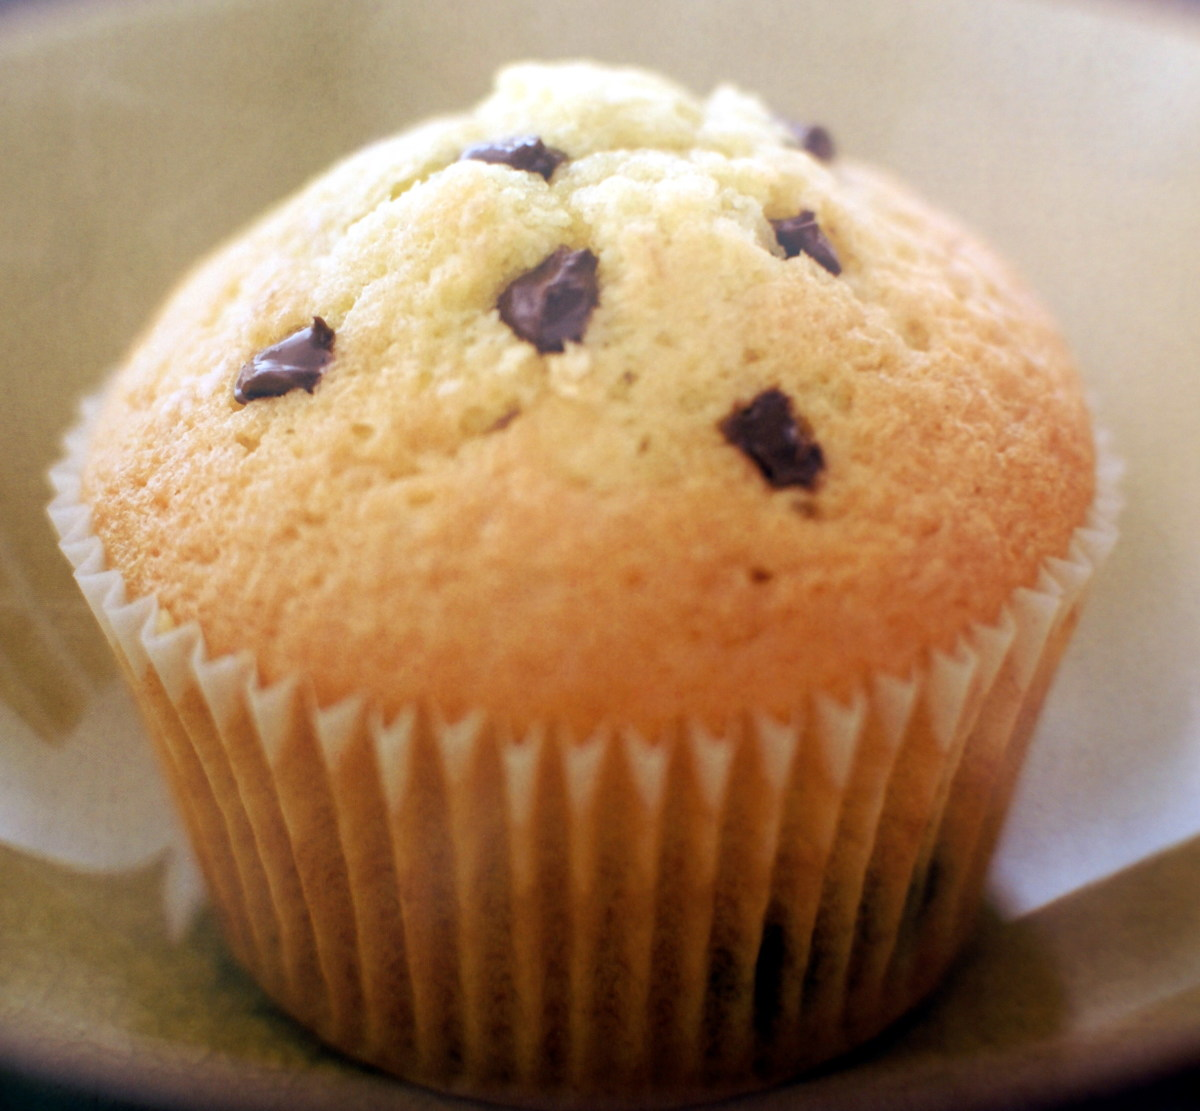 How to bake choc chip cupcakes